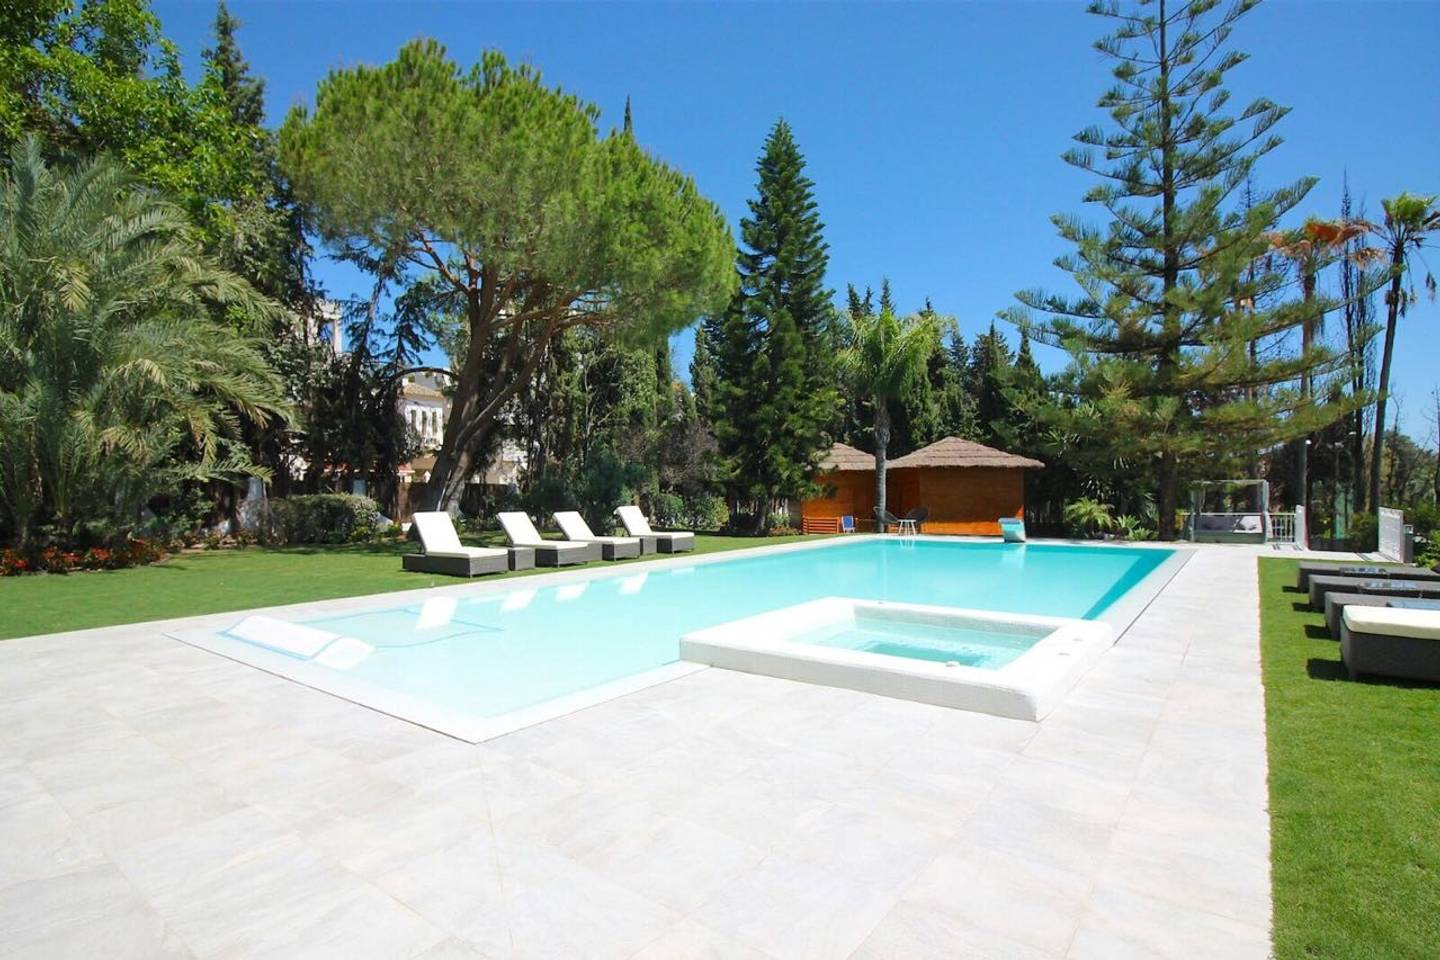 Apartment CHIC Spanish Villa pool   spa next to golf cours photo 25684338